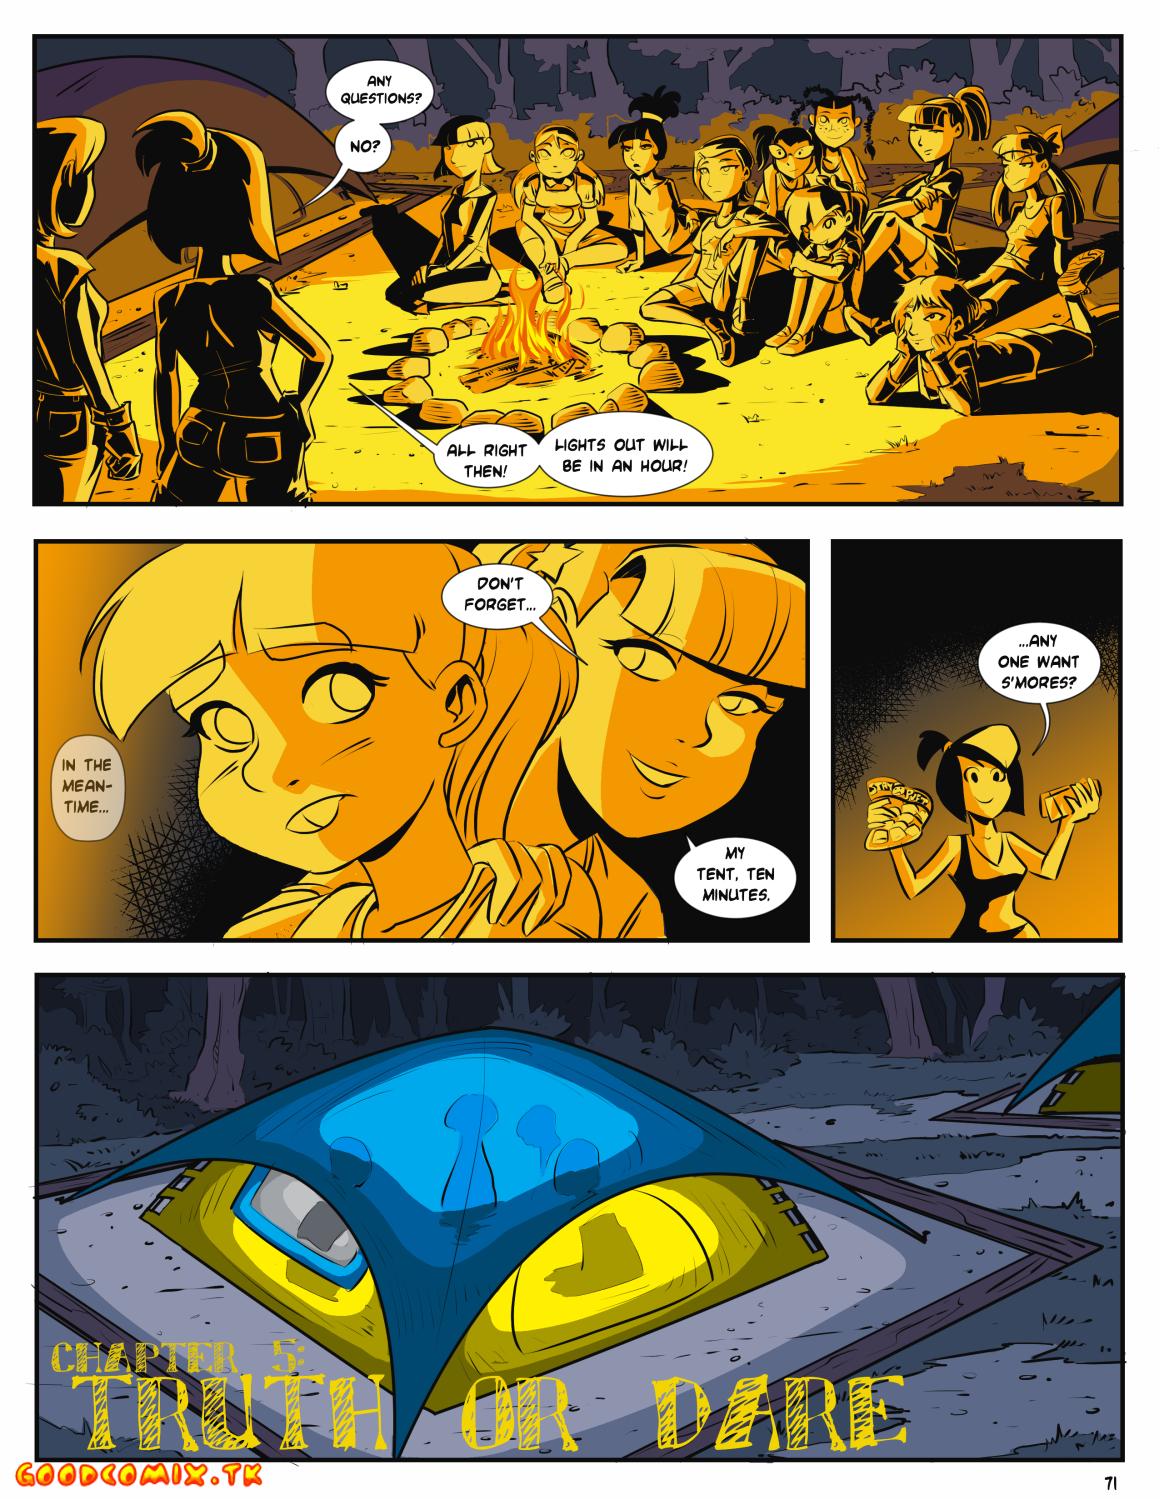 Goodcomix.tk Crossover - [Mr.D] - Camp Sherwood - Ch.5 - Truth Or Dare